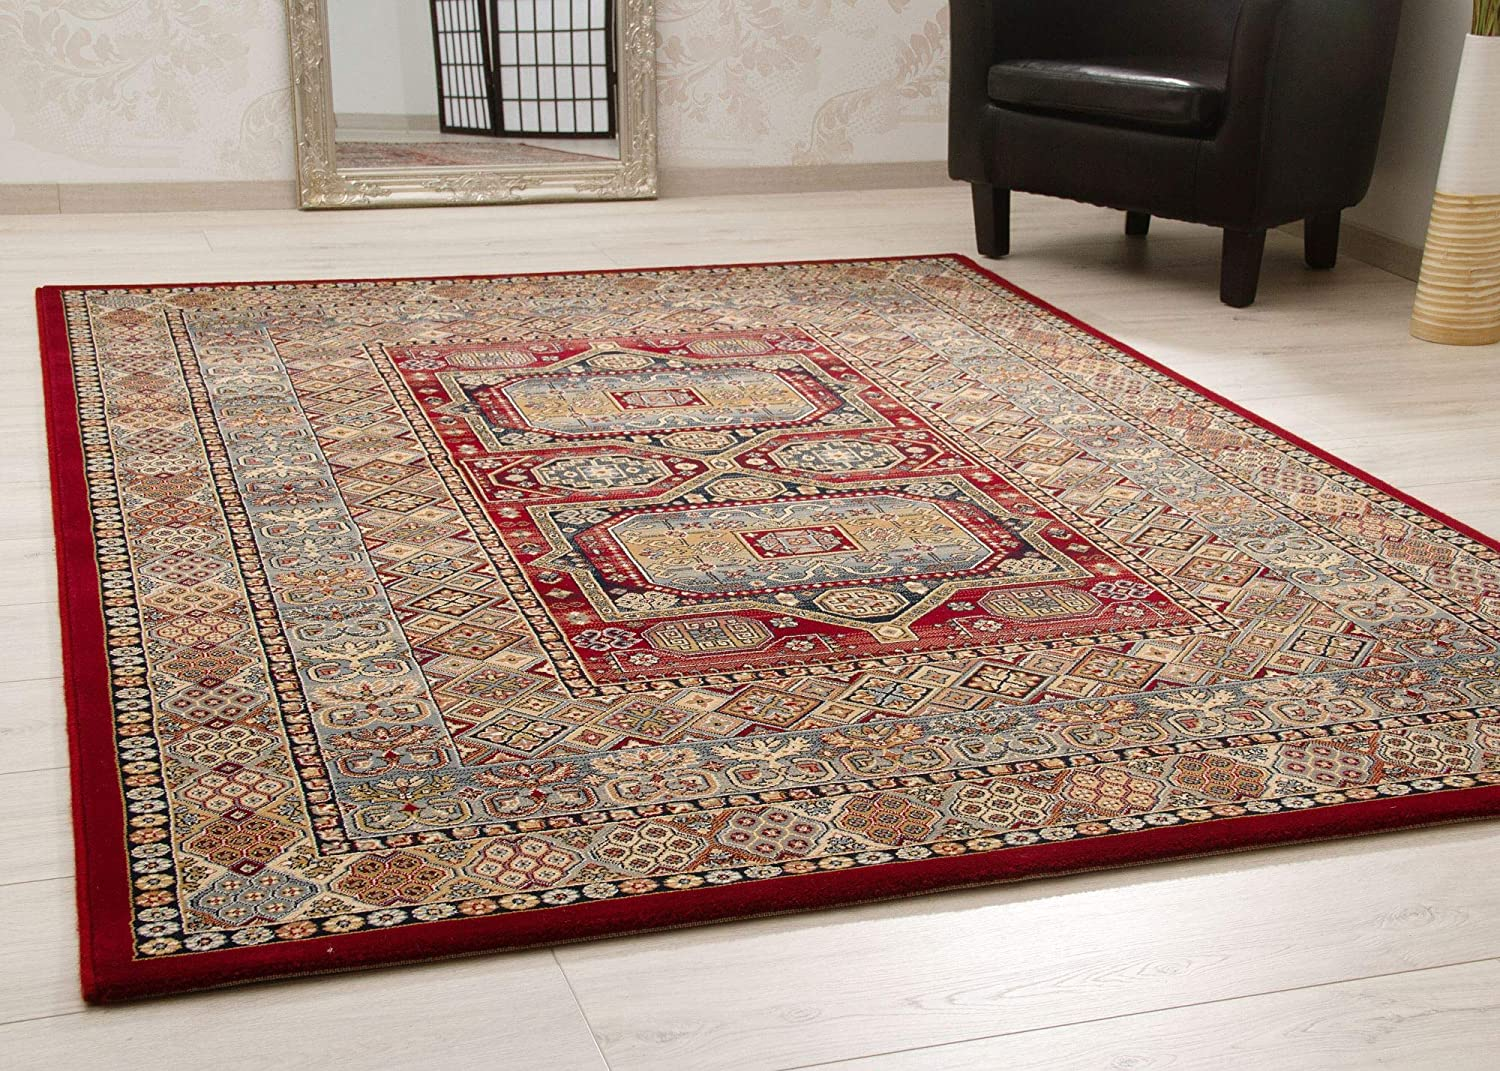 Steffensmeier Rug Classical Quality Oriental Style For Living Room And Bedroom In Red Blue Size 160x230 Cm Amazon Co Uk Kitchen Home